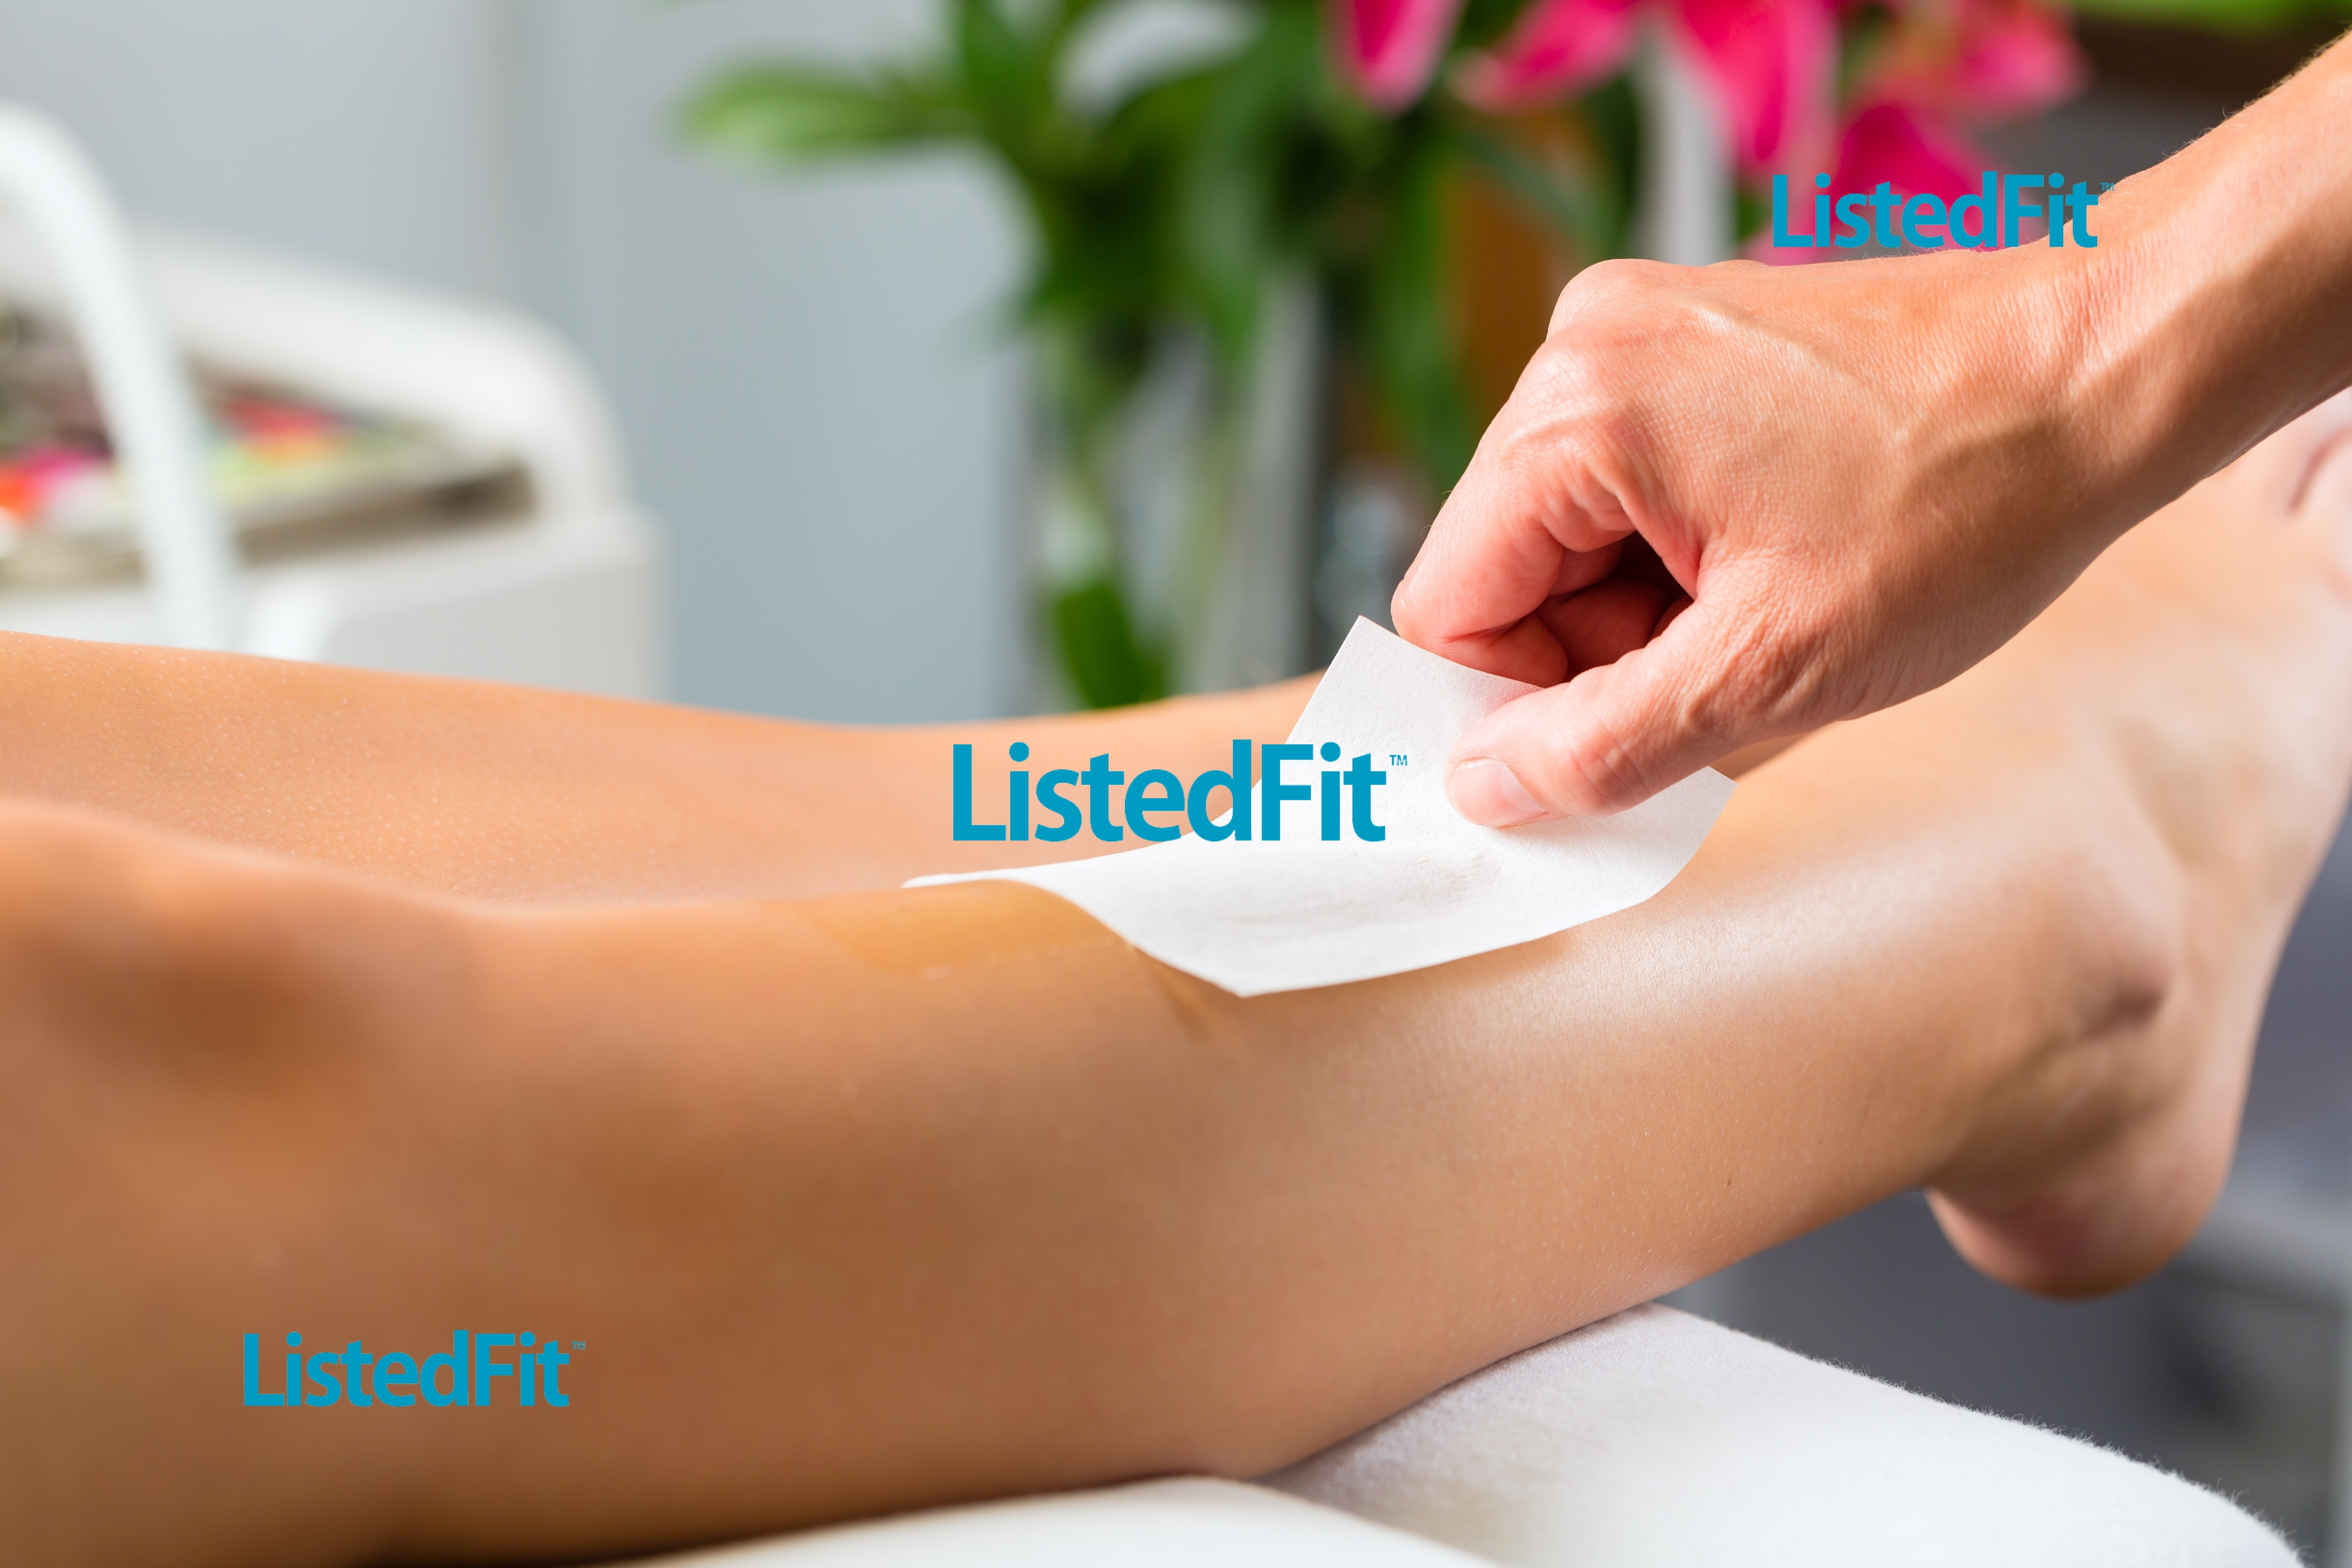 Brazilian Waxing All You Need To Know Listedfit Com